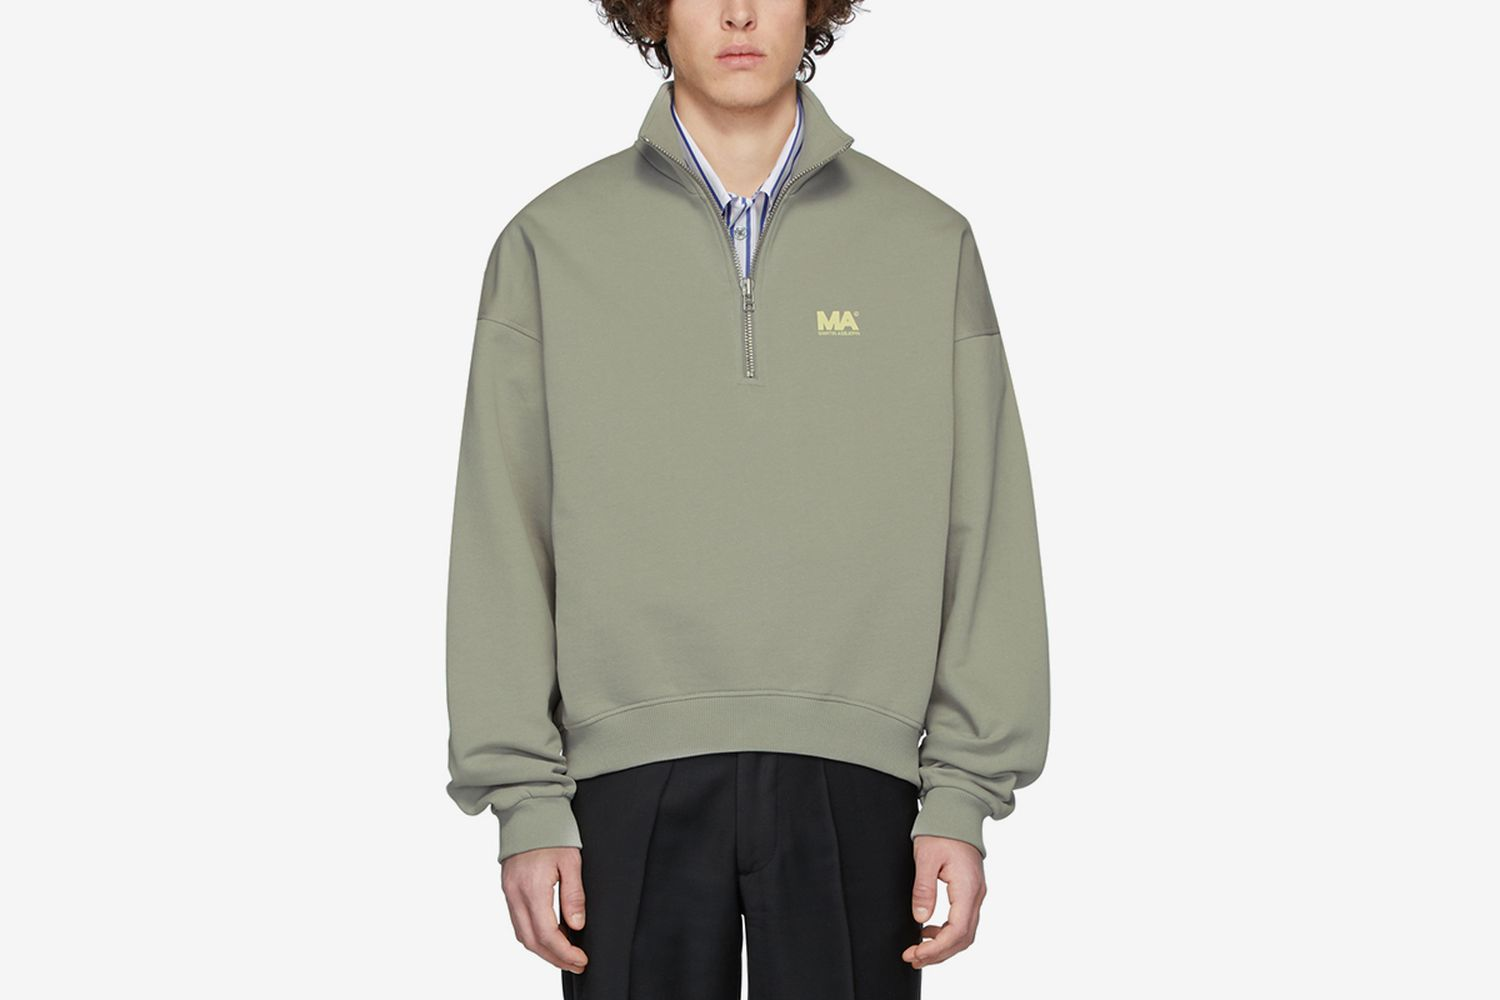 Andrew Zip-Up Sweater